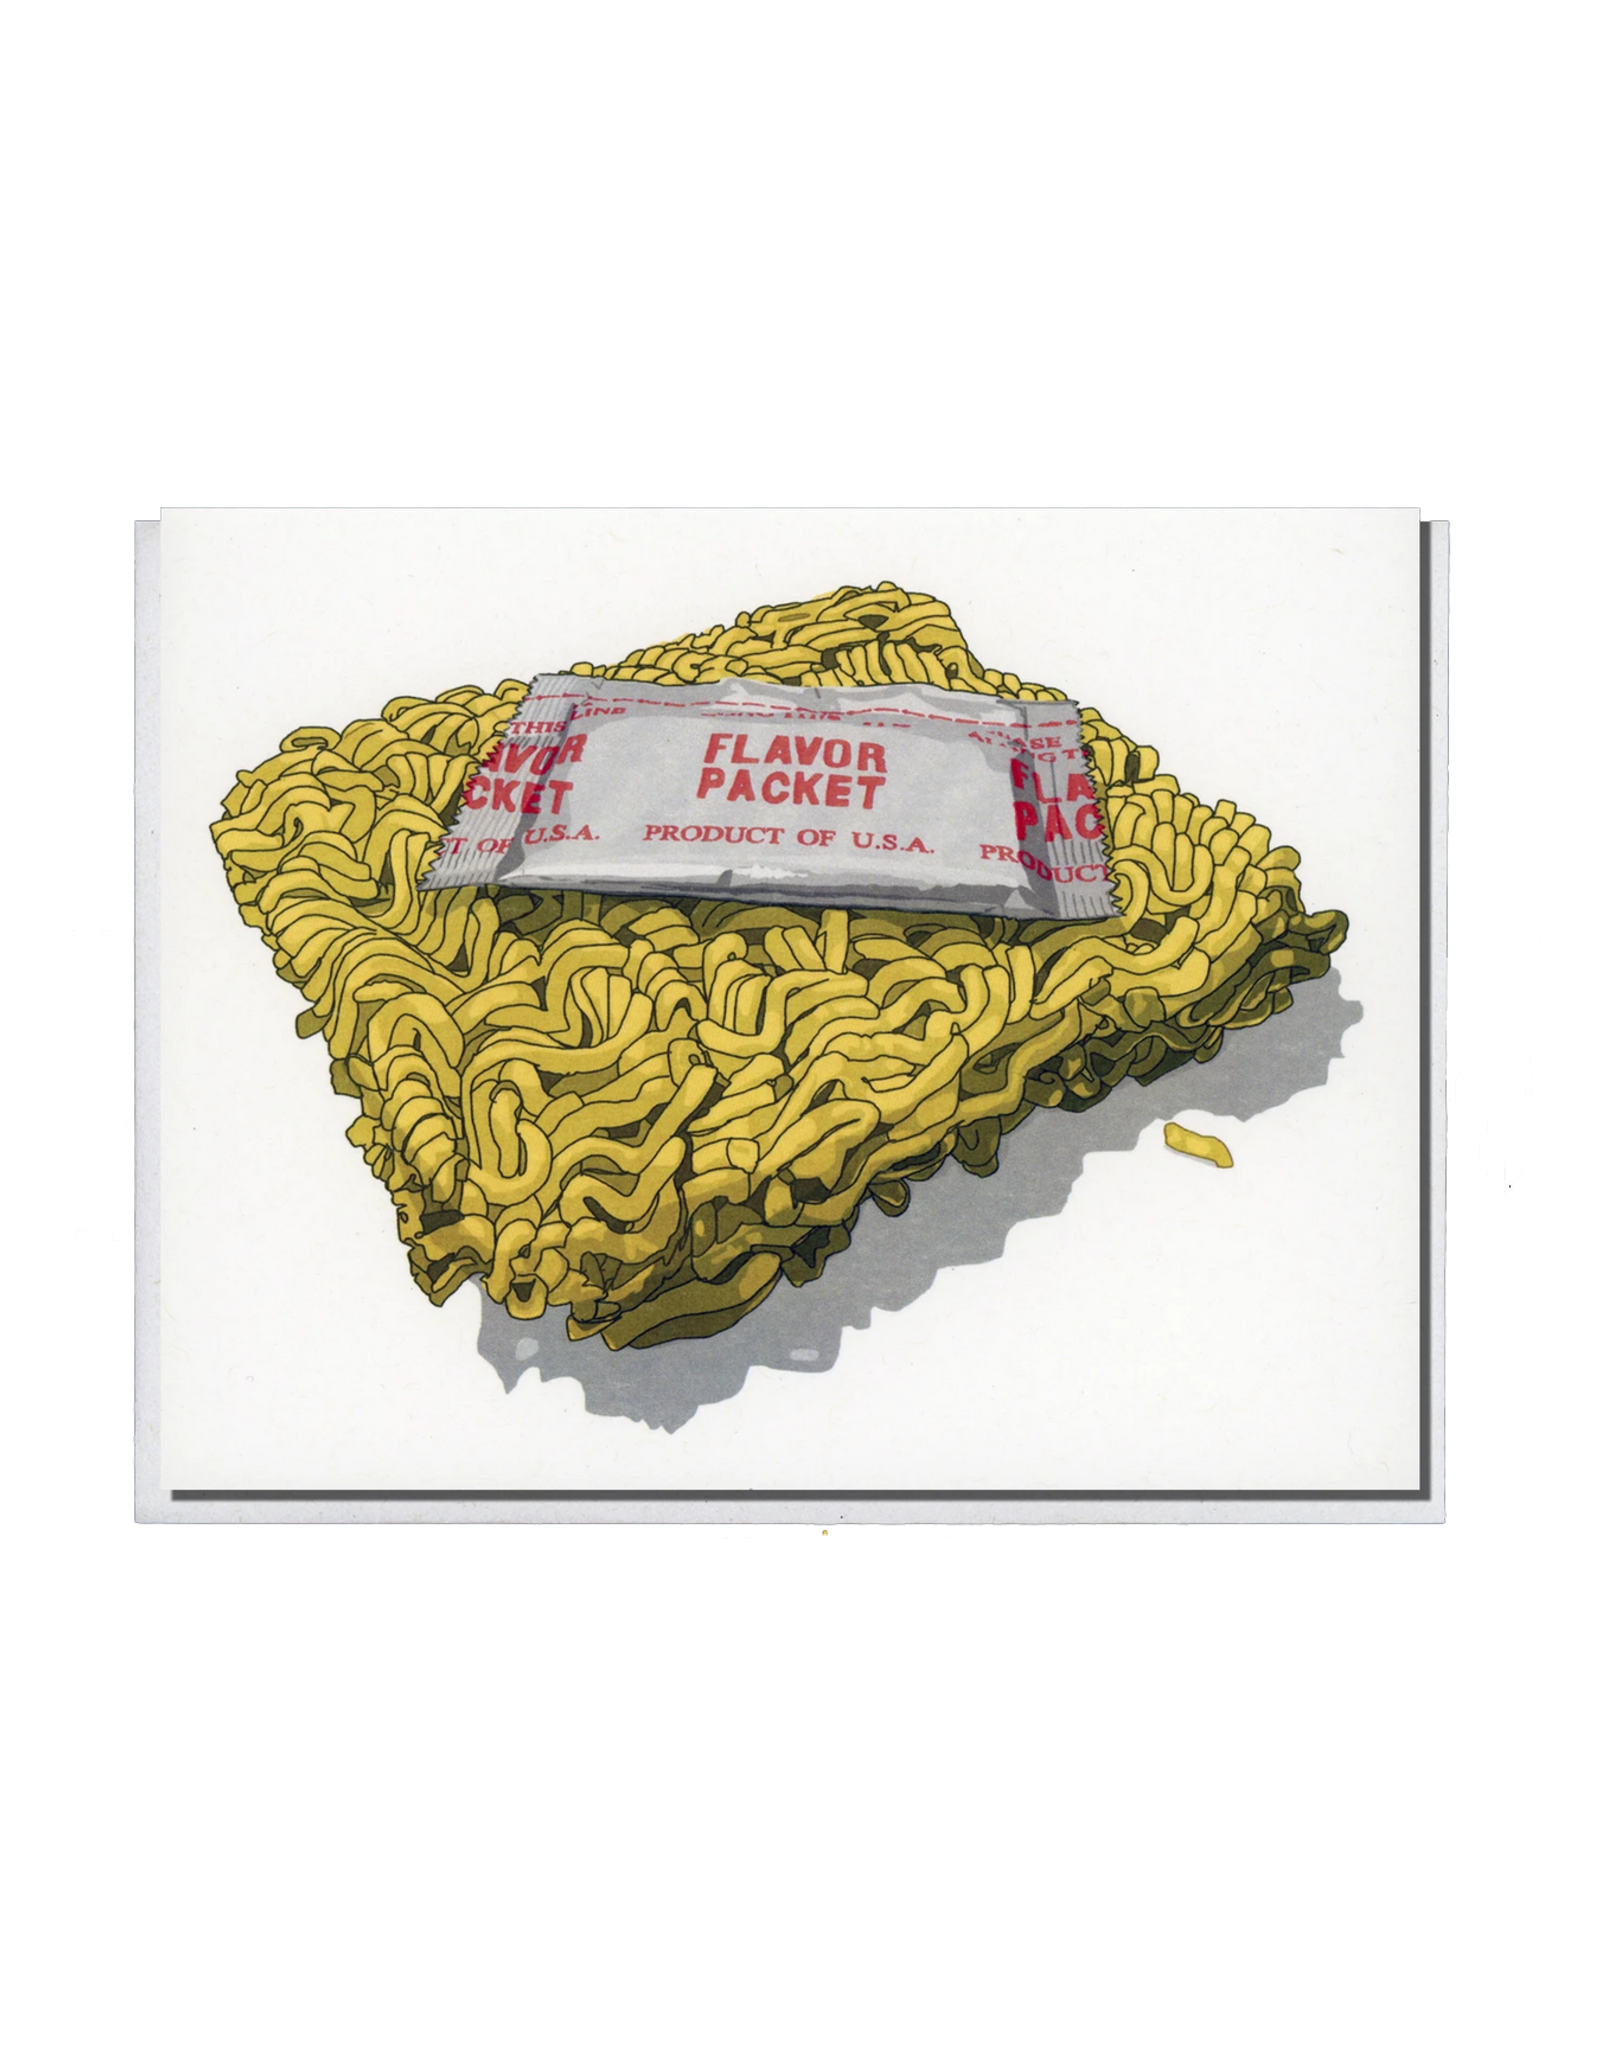 Instant Ramen Flavor Packet Greeting Card